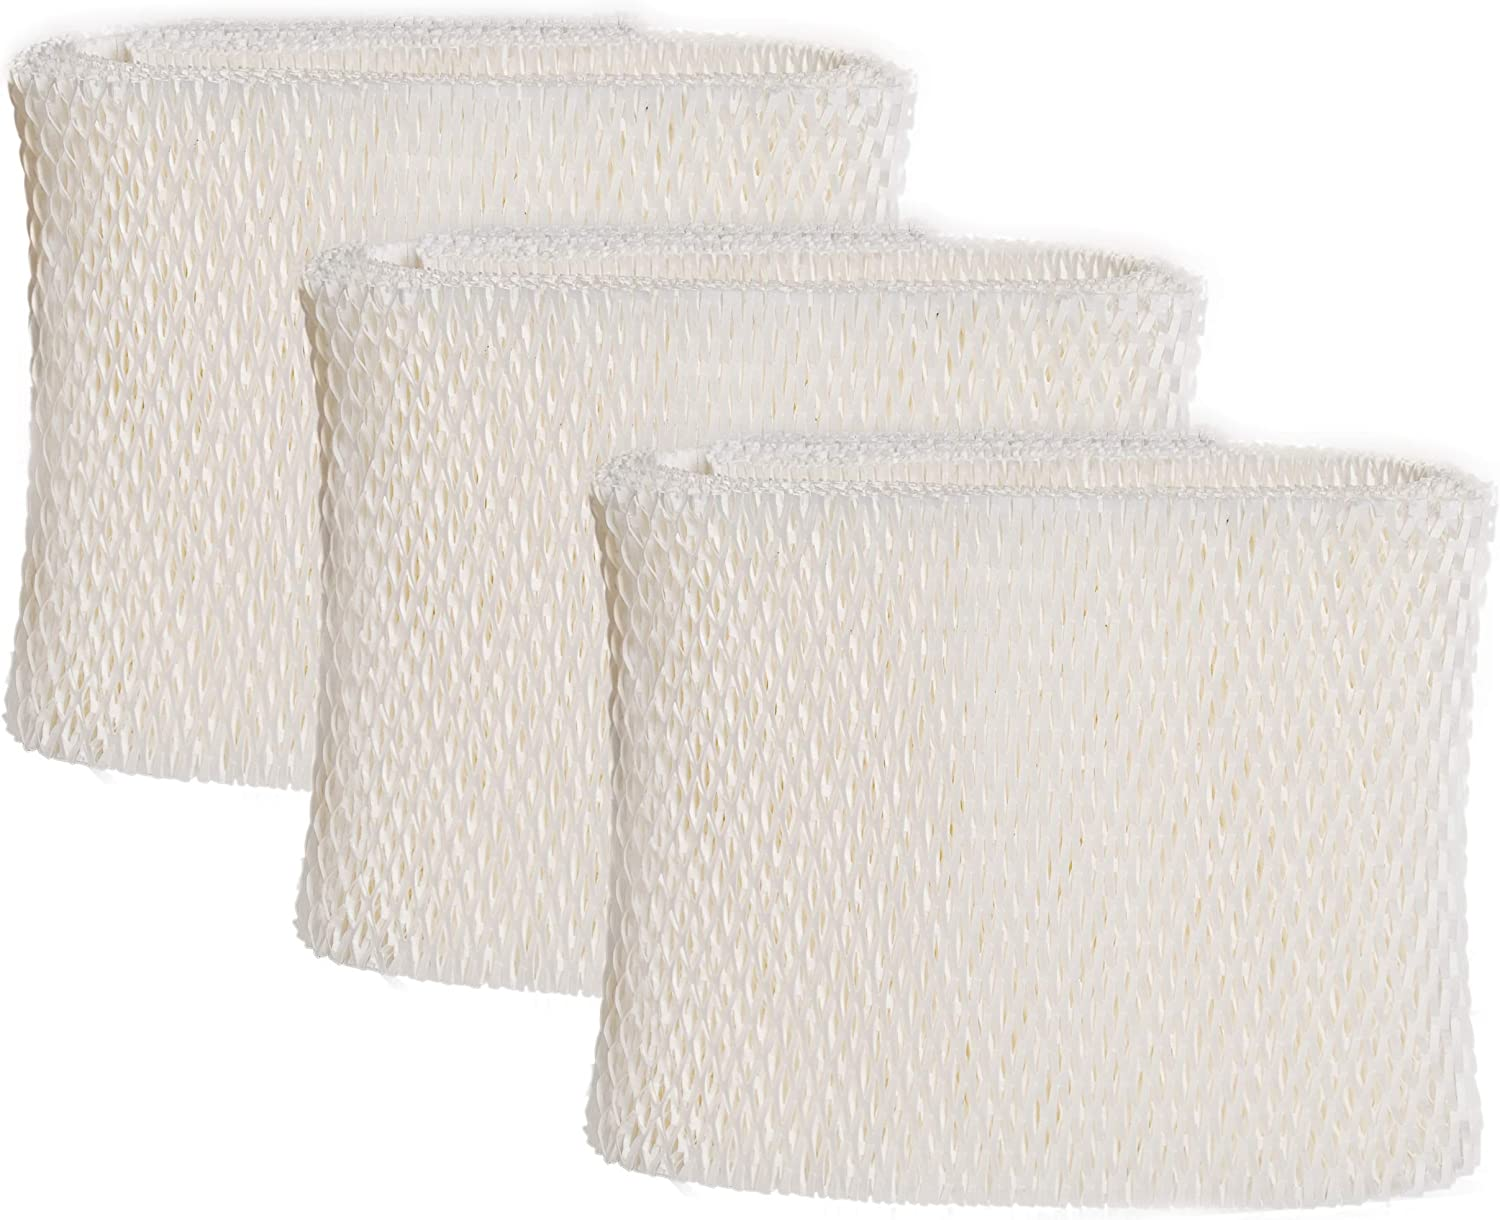 HIFROM Humidifier Wick Filter Replacement for Essick Air MAF-2 Air Care Filter MA0600 MA0601 MA0800 MA08000; Kenmore 15408 154080 17006 29706 29988 29880C (3pcs)